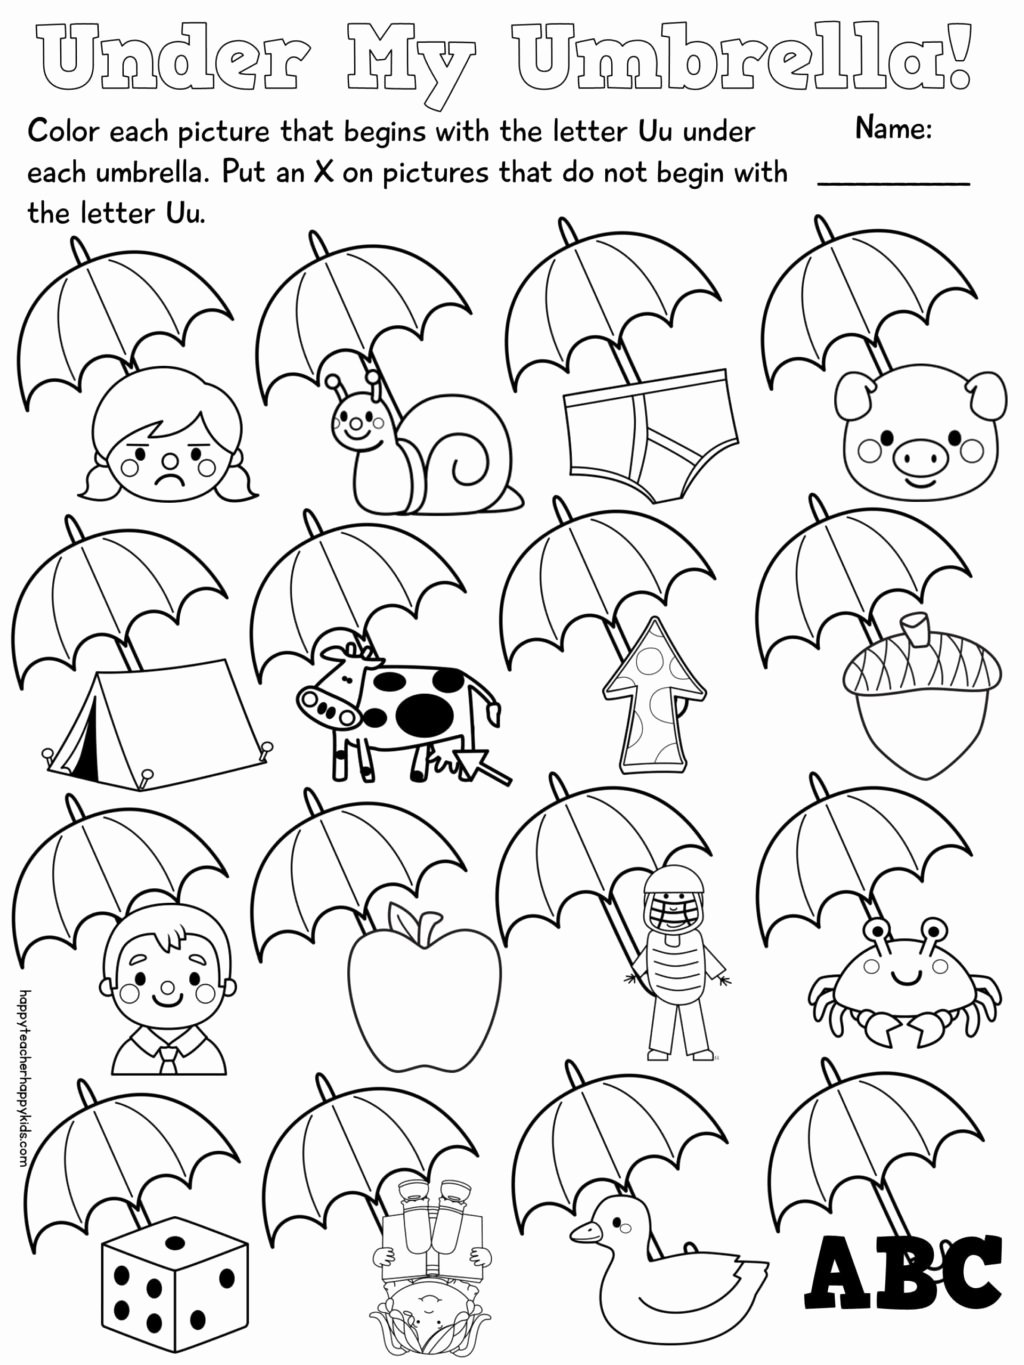 Polar Bear Worksheets for Preschoolers Ideas Worksheet Awesome 1st Grade Phonicsorksheets Image Ideas